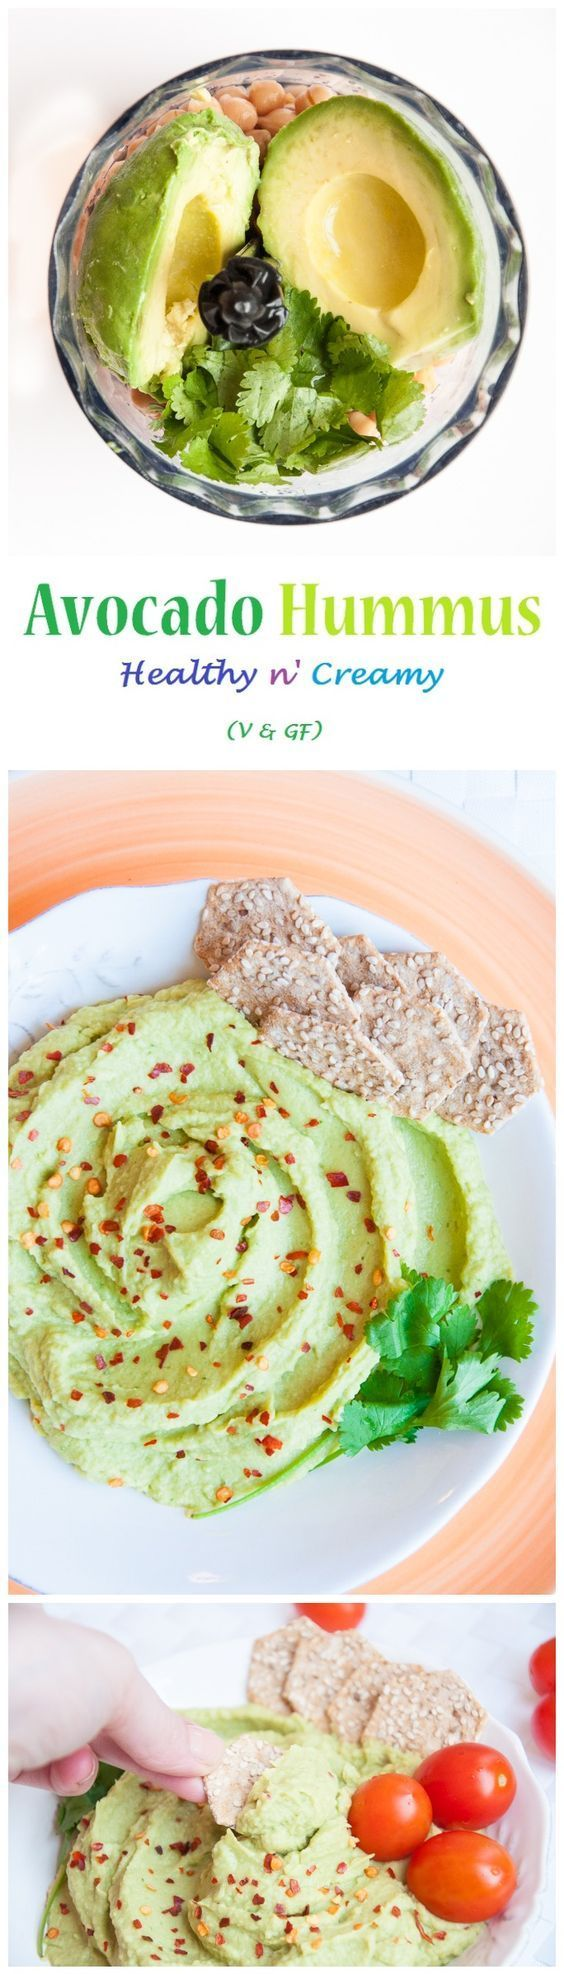 Healthy Avocado Hummus Recipe without Tahini! | VeganFamilyRecipe... | #dip #appetizer #vegan #glutenfree